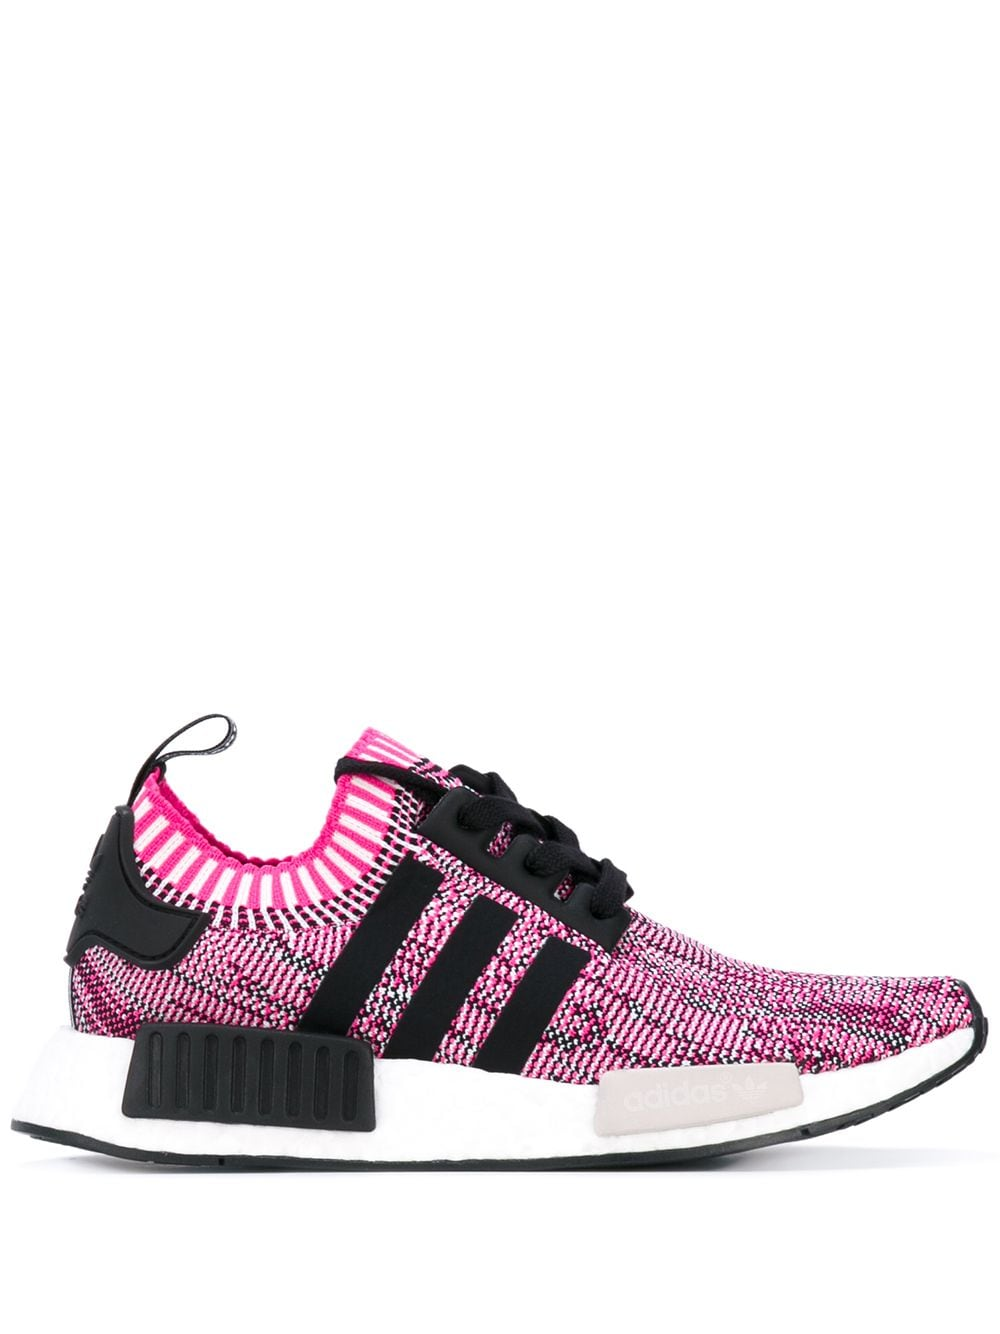 adidas NMD_R1 sneakers - PINK von adidas